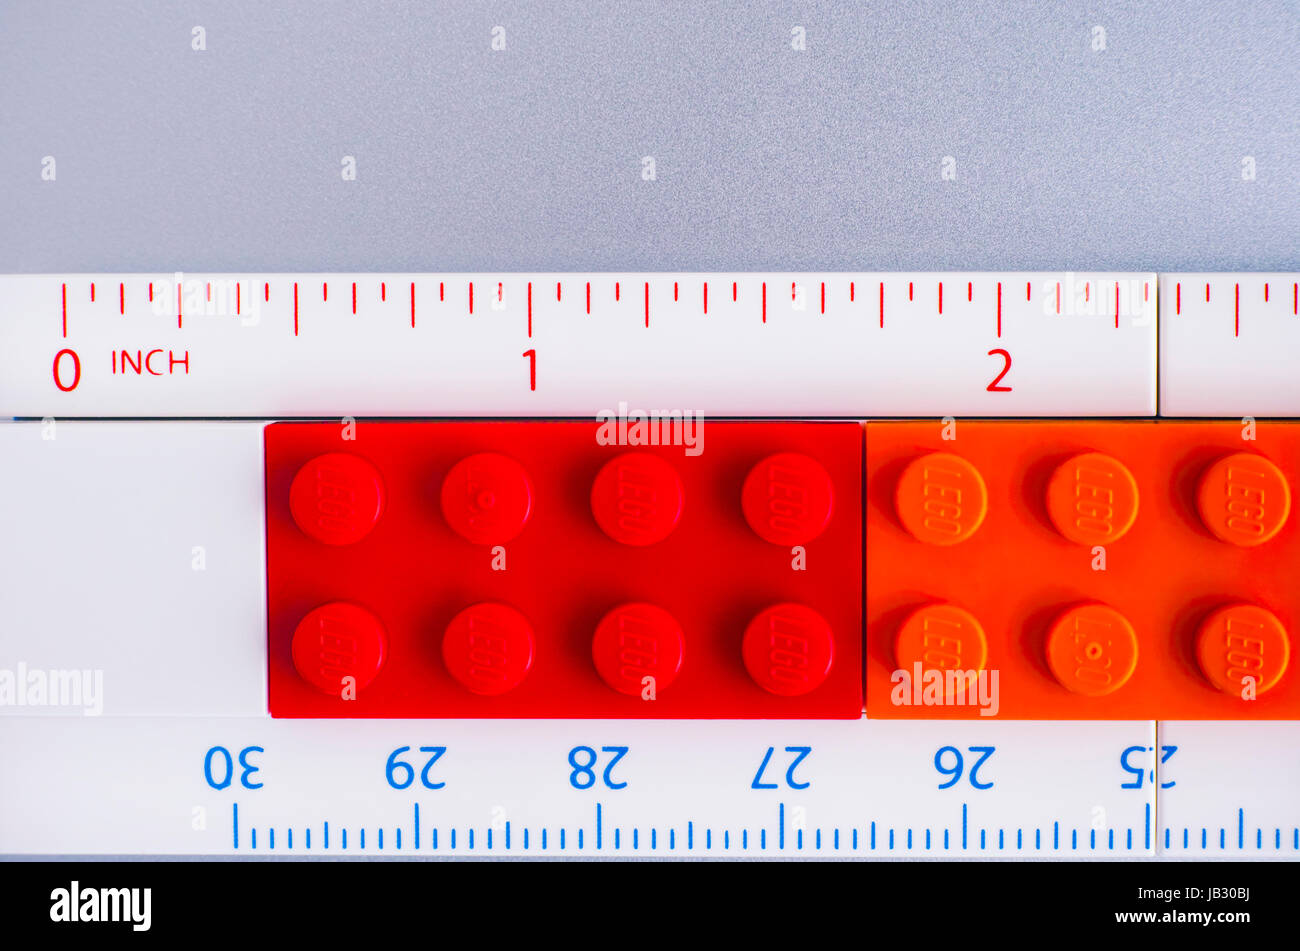 Tambov russian federation may 20 2017 lego ruler with inches tambov russian federation may 20 2017 lego ruler with inches centimeters and buycottarizona